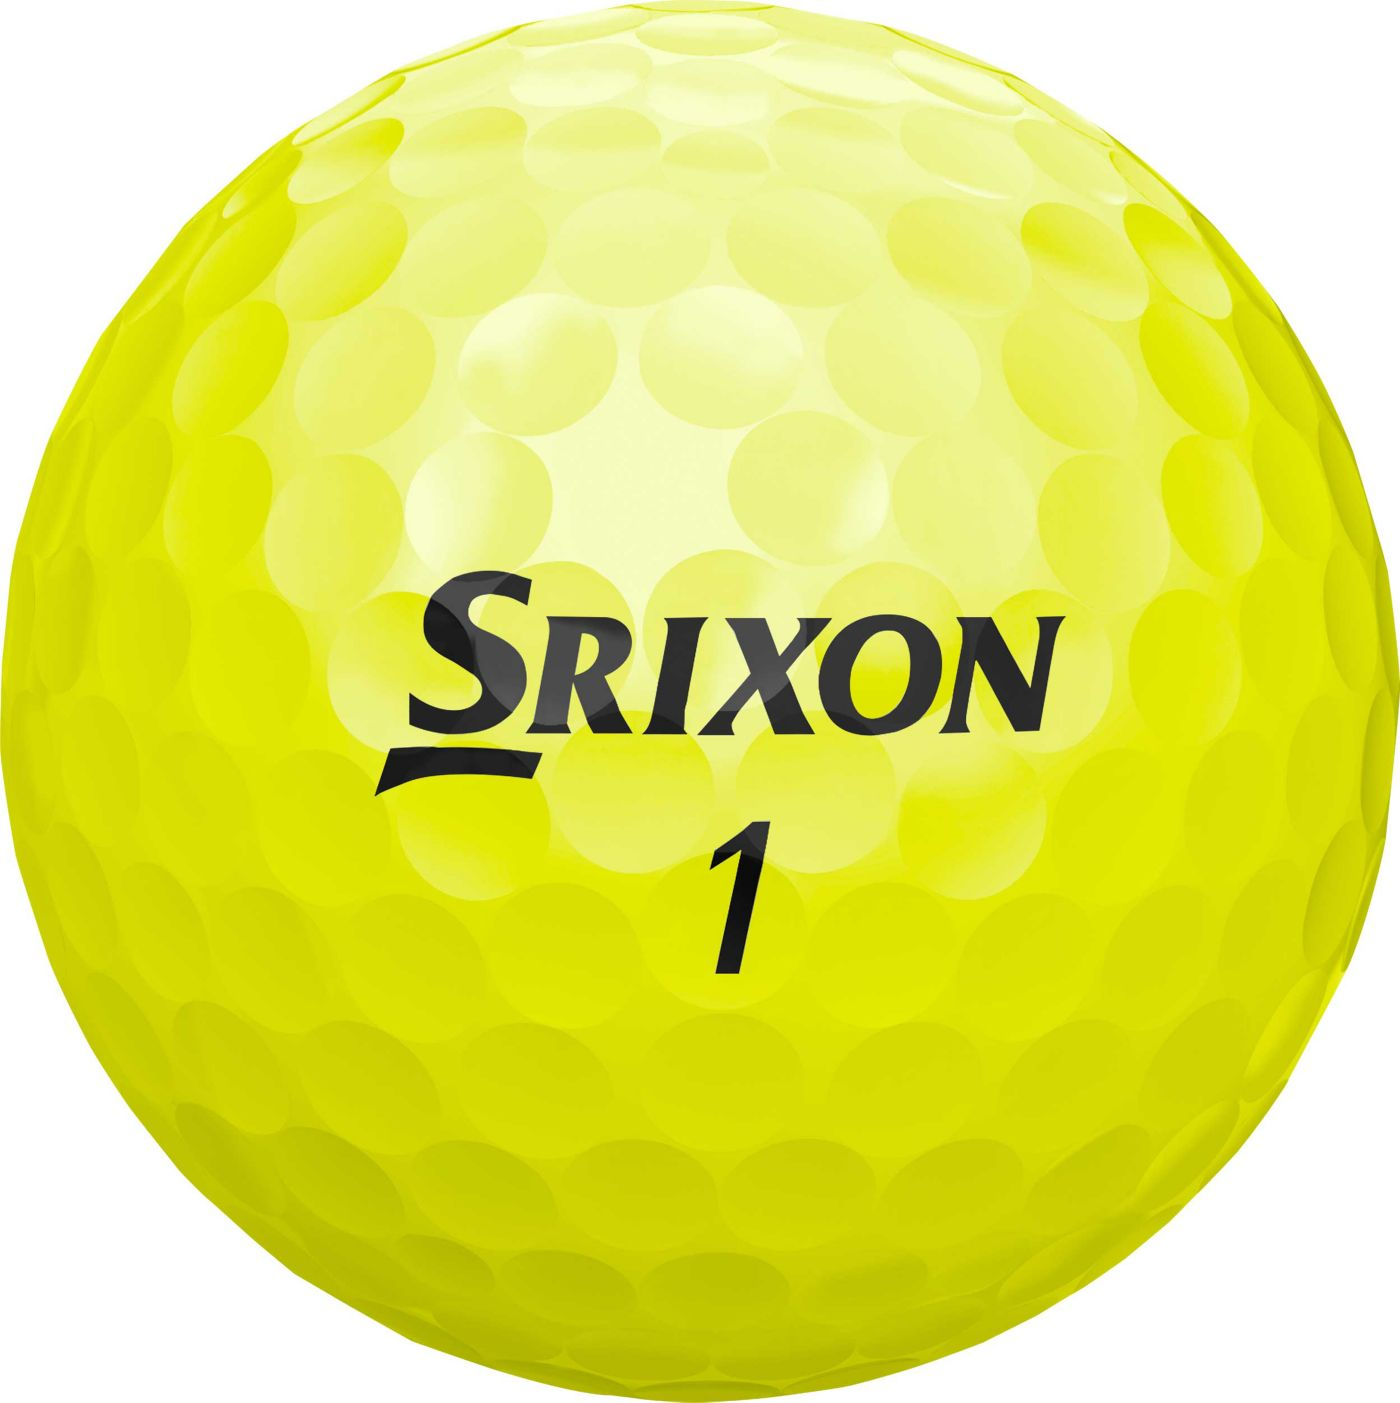 Srixon 2018 Soft Feel 11 Yellow Golf Balls